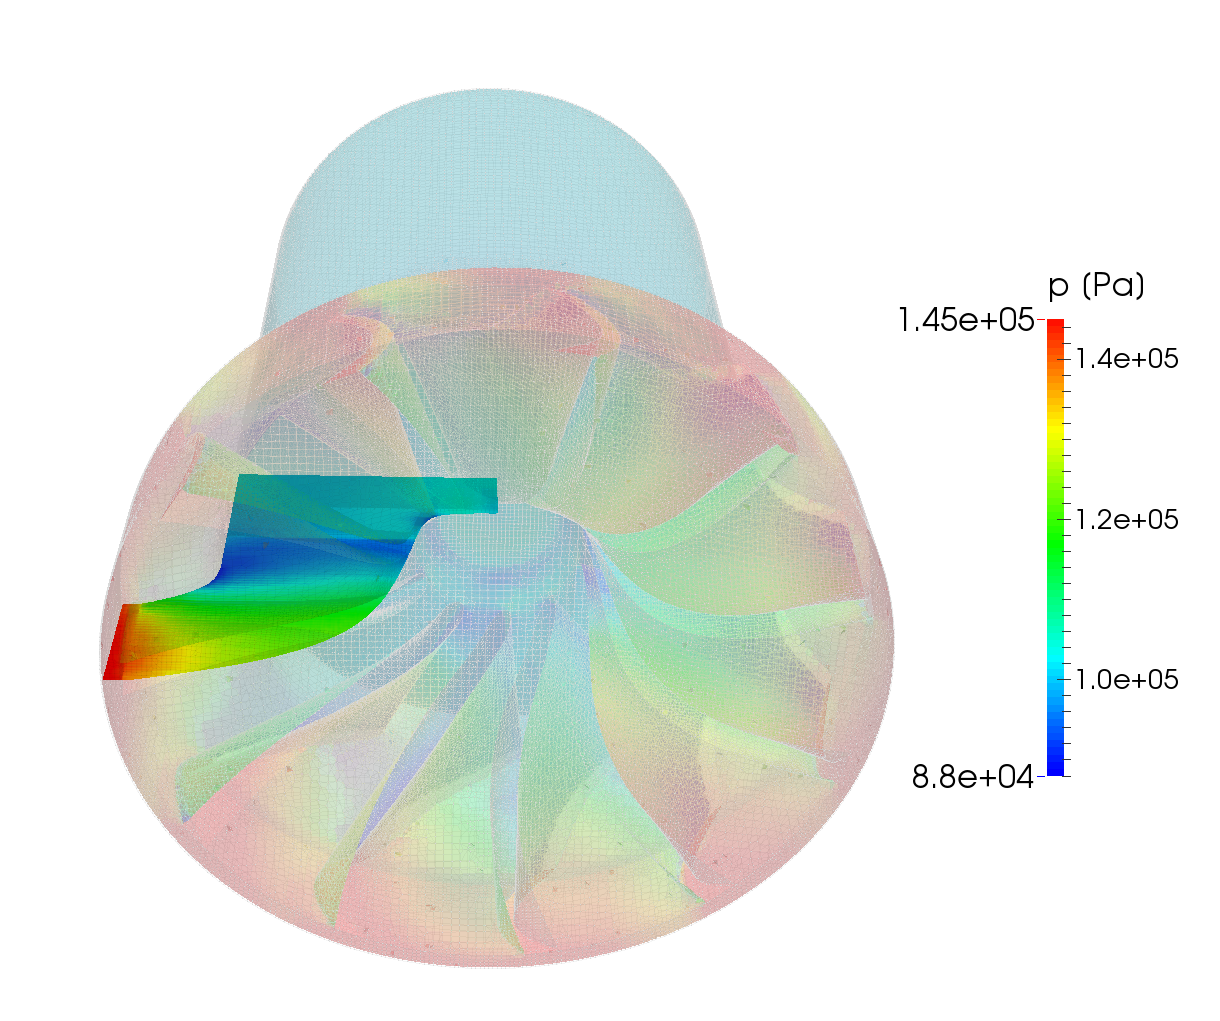 CFturbo-TurbomachineryCFD-radial-turbine-impeller-pressure-meridional-average